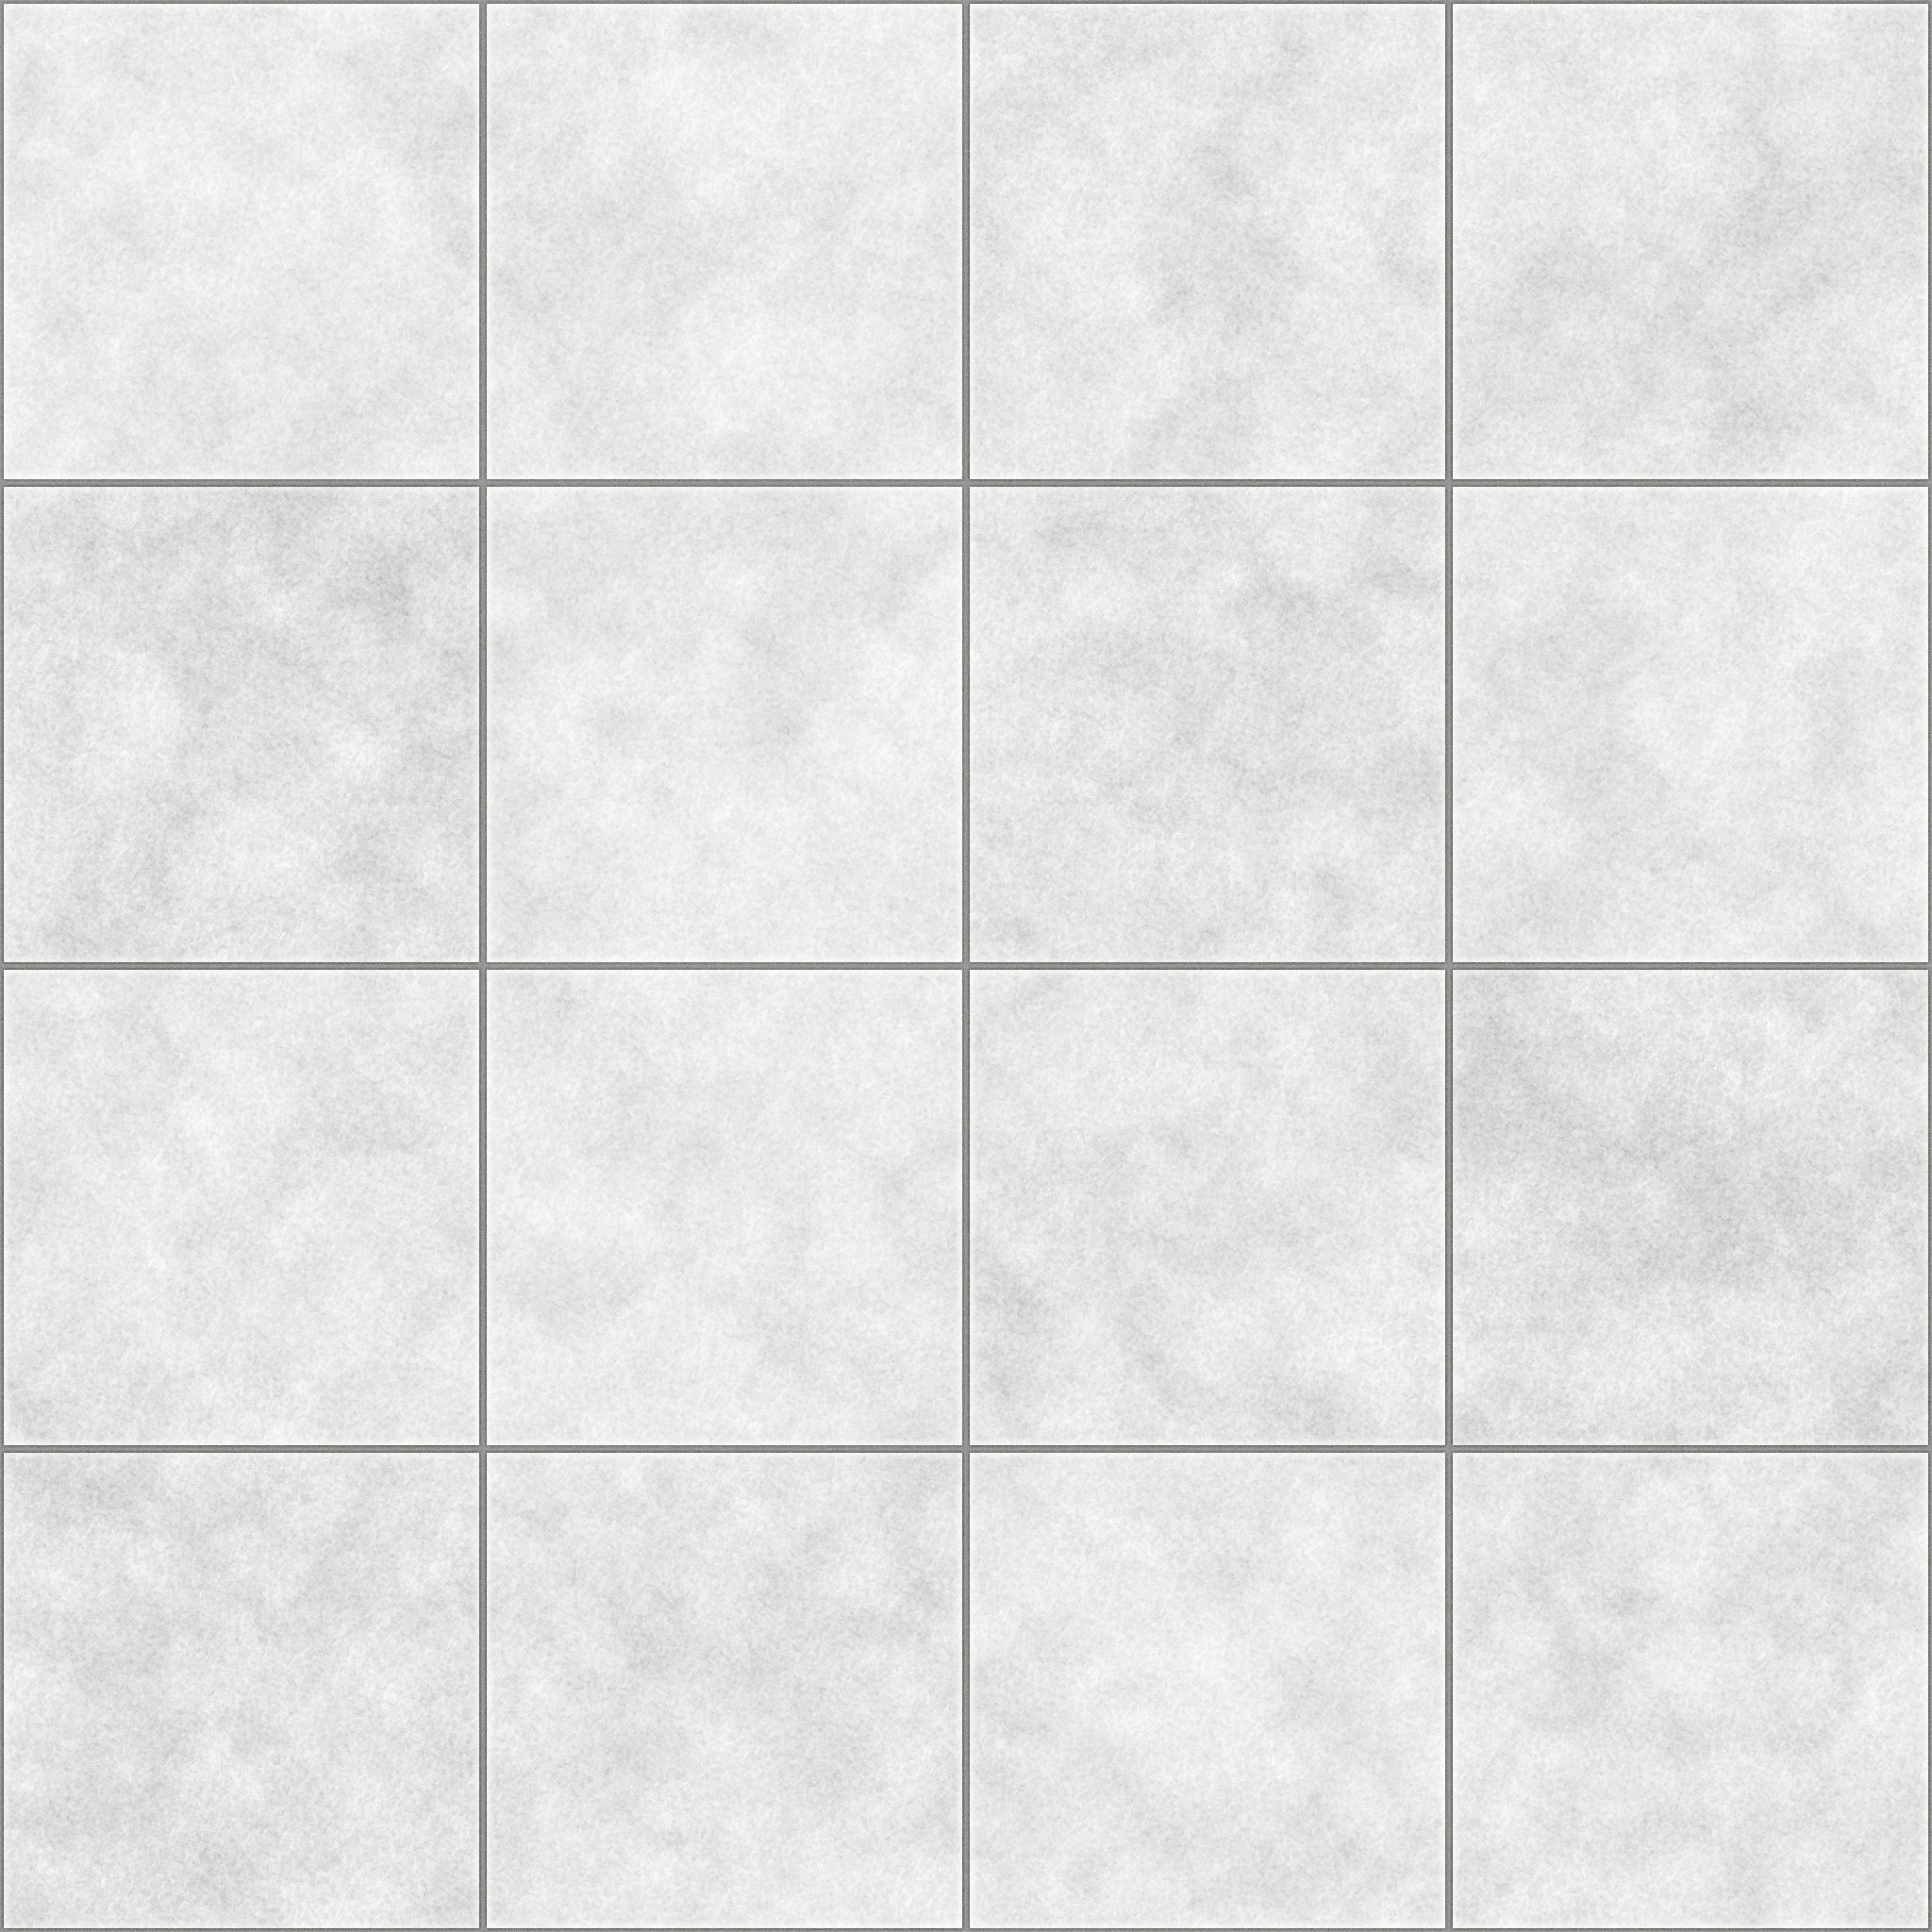 Home element marble floor tiles texture tileable 2048 2048 by cd texture pinterest marble Ceramic stone tile